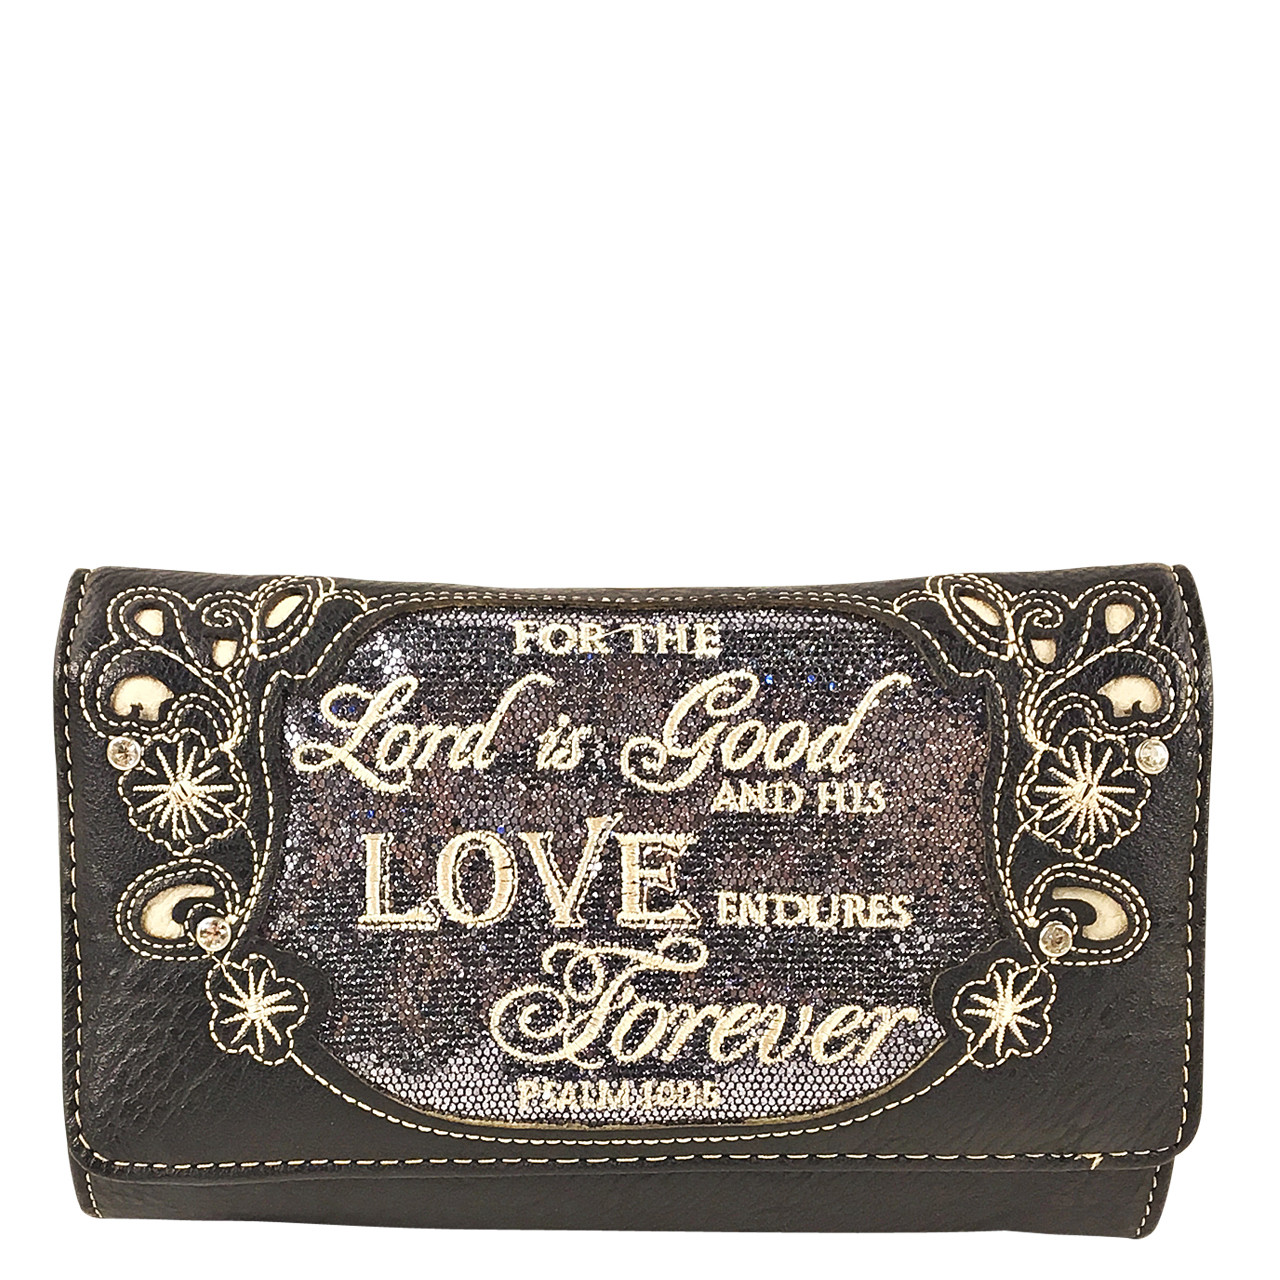 GRAY BIBLE LOVE QUOTE RHINESTONE STUDDED LOOK CLUTCH TRIFOLD WALLET